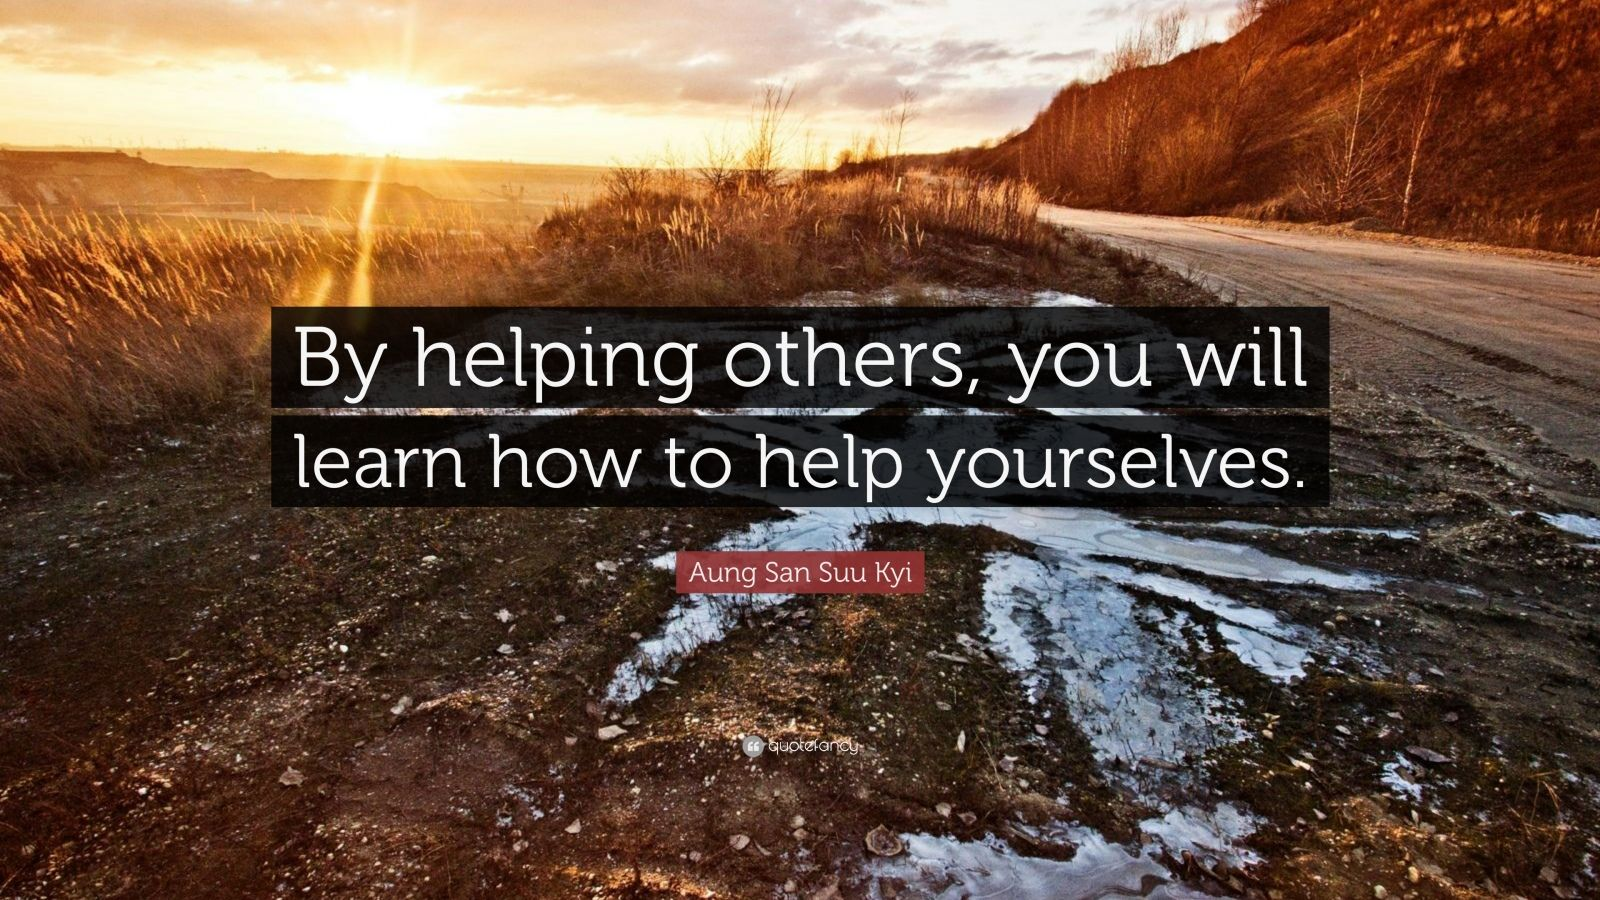 """Aung San Suu Kyi Quote: """"By helping others, you will learn how to help yourselves."""""""